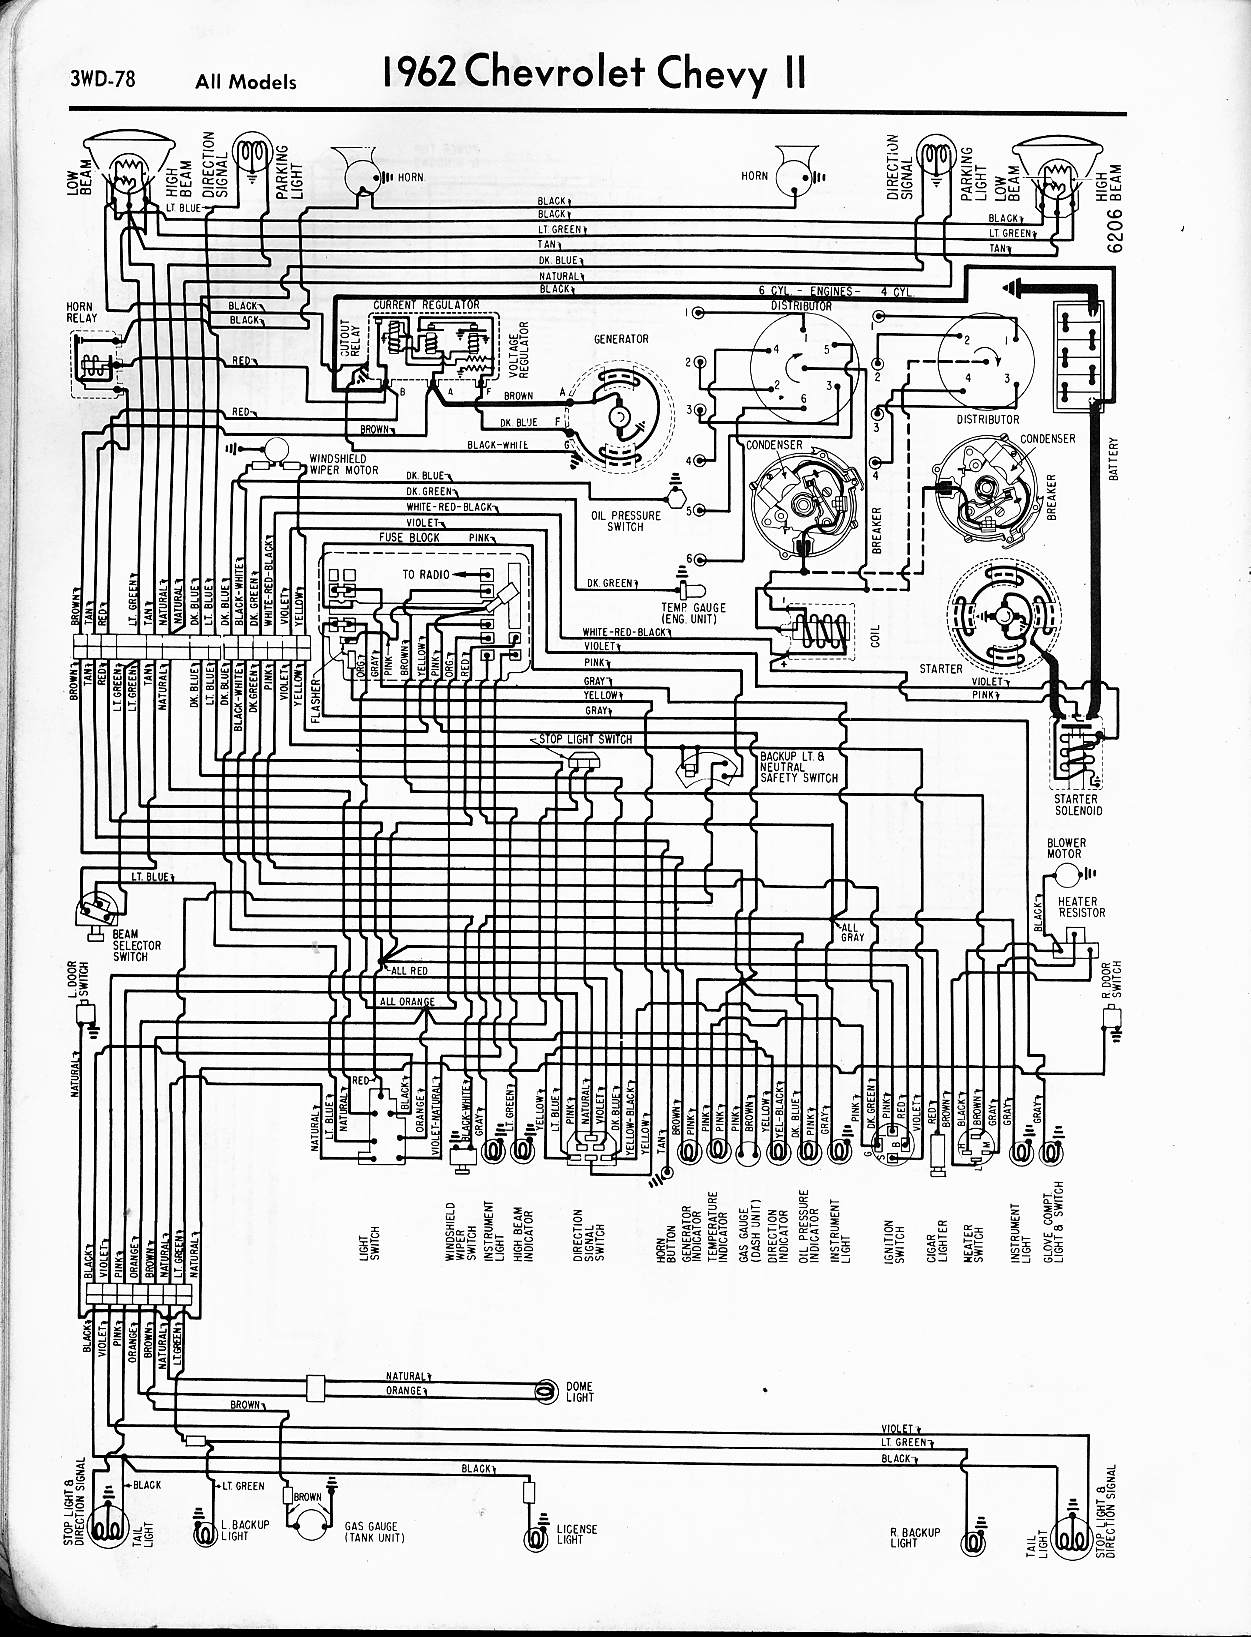 MWireChev62_3WD 078 57 65 chevy wiring diagrams 280z headlight wiring diagram at creativeand.co